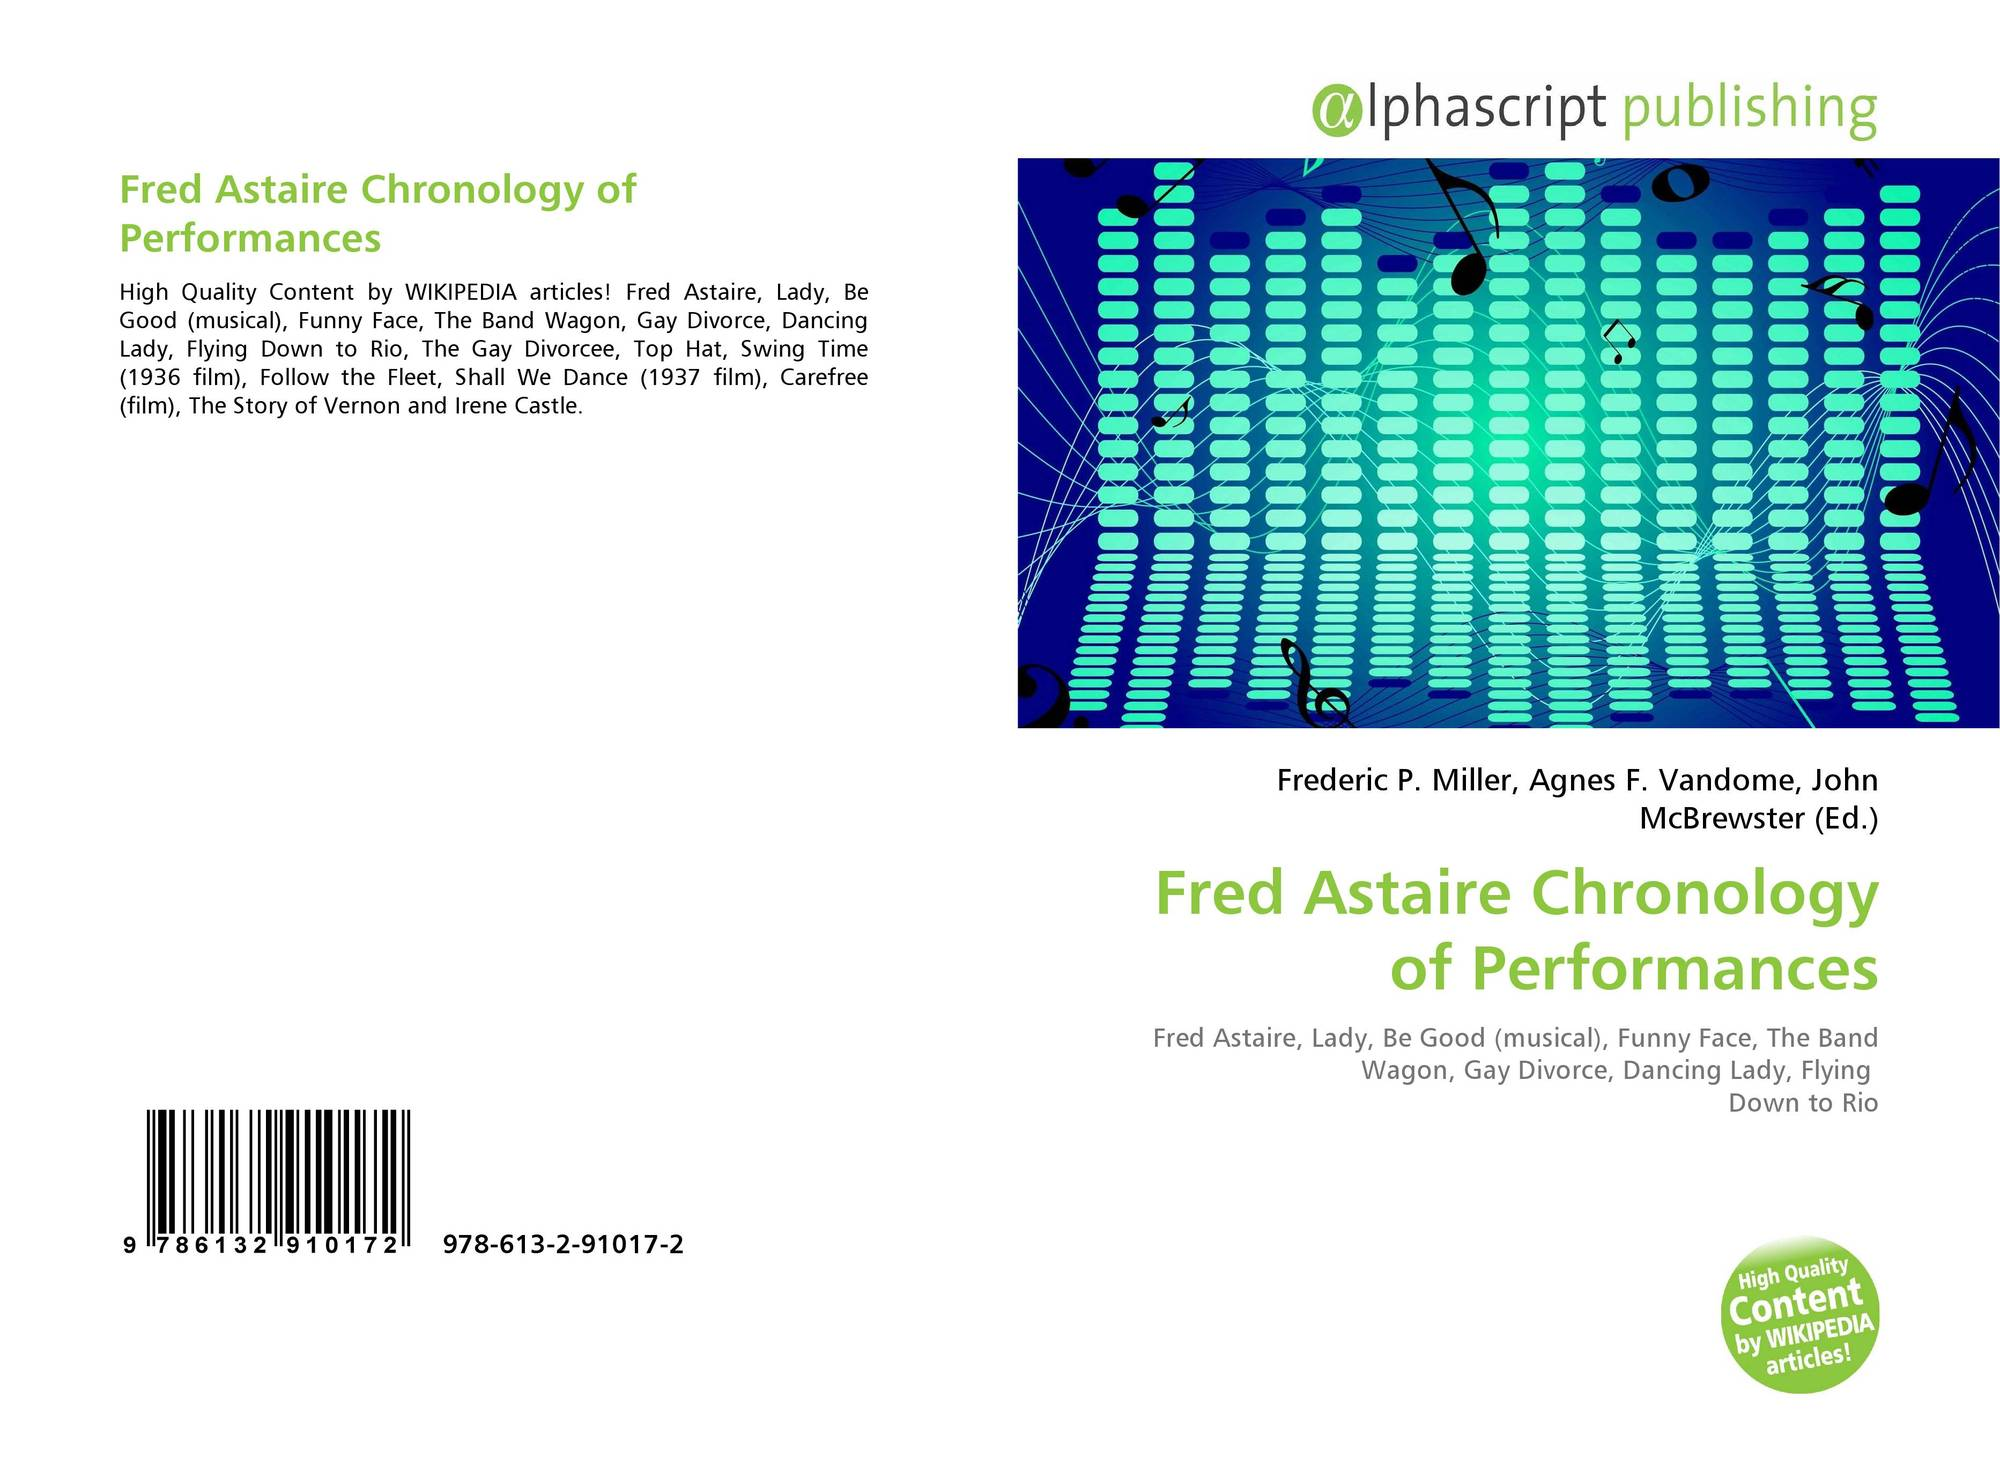 Fred Astaire Chronology of Performances, 978-613-2-91017-2